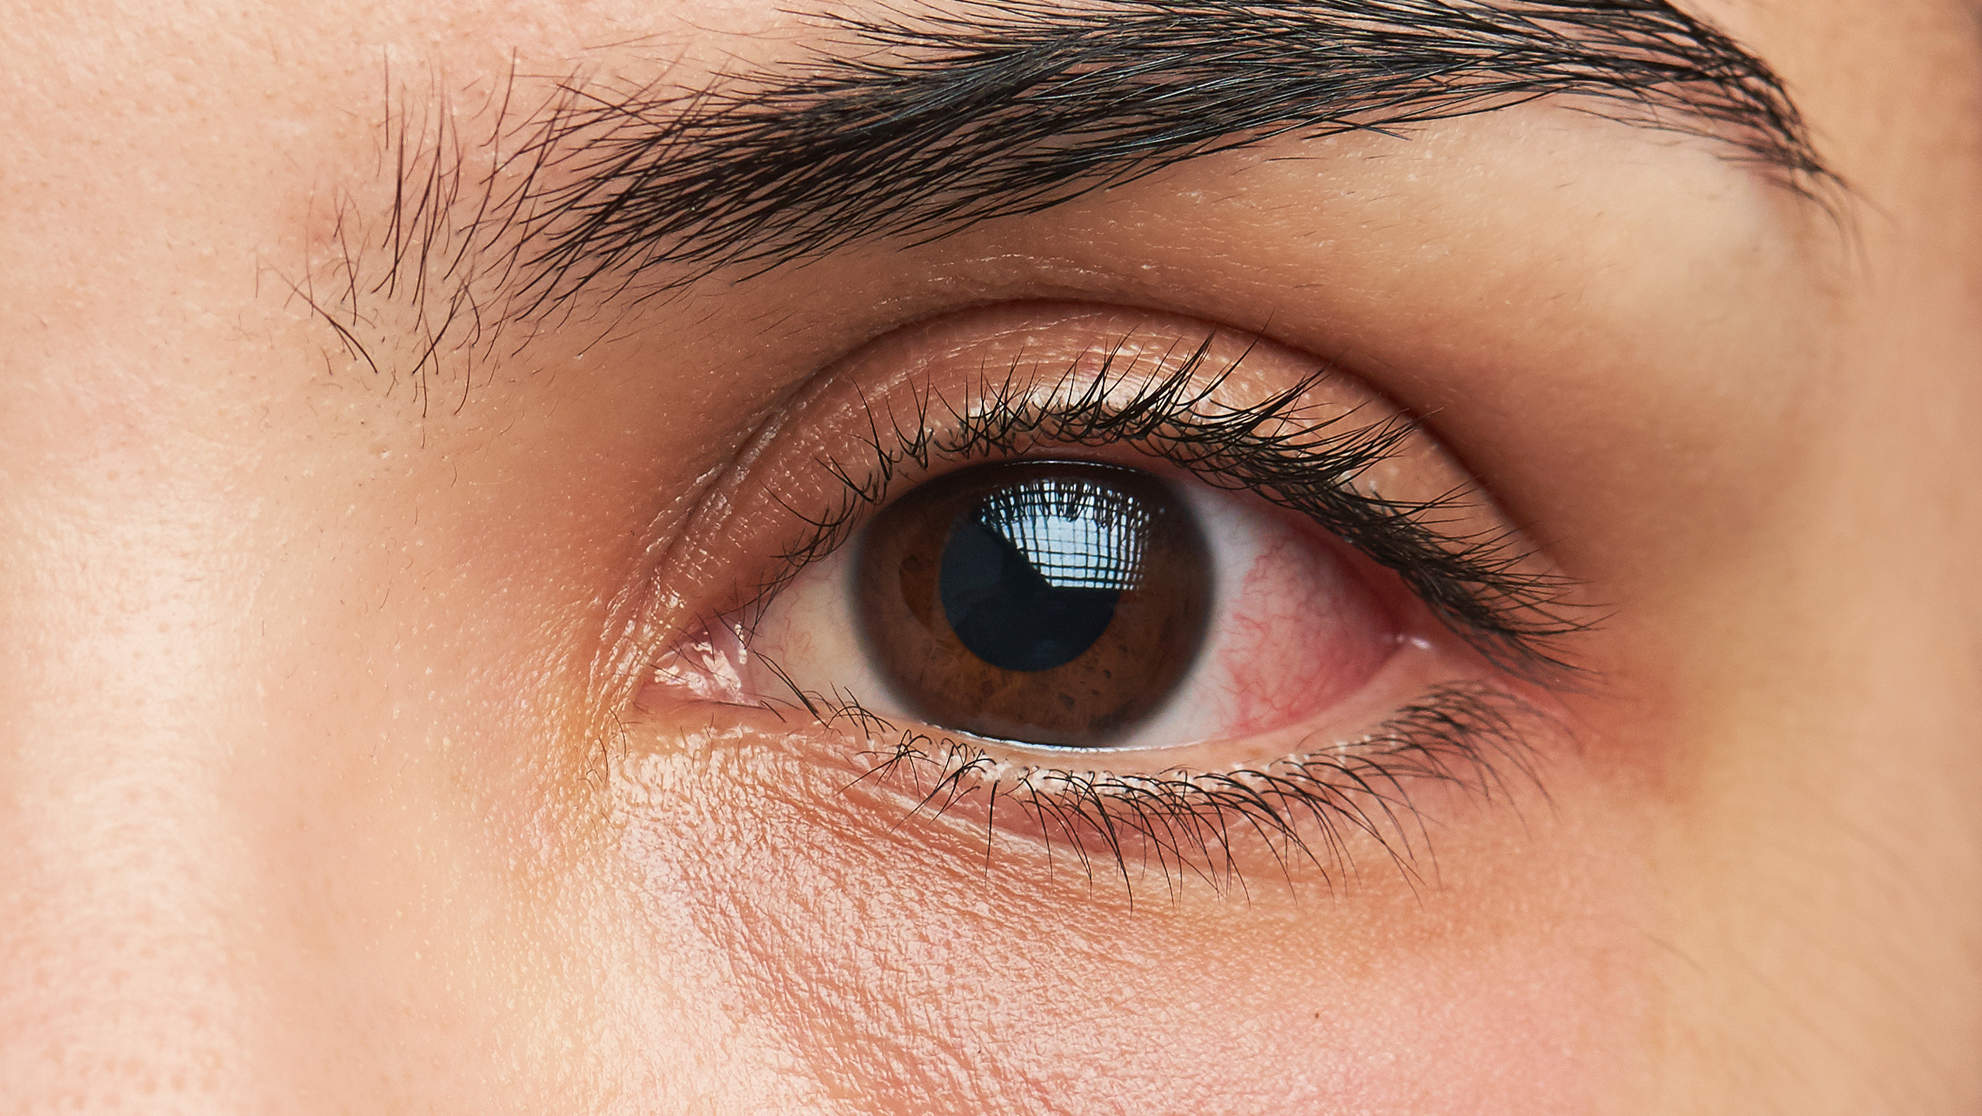 pink-eye-close-up-infection